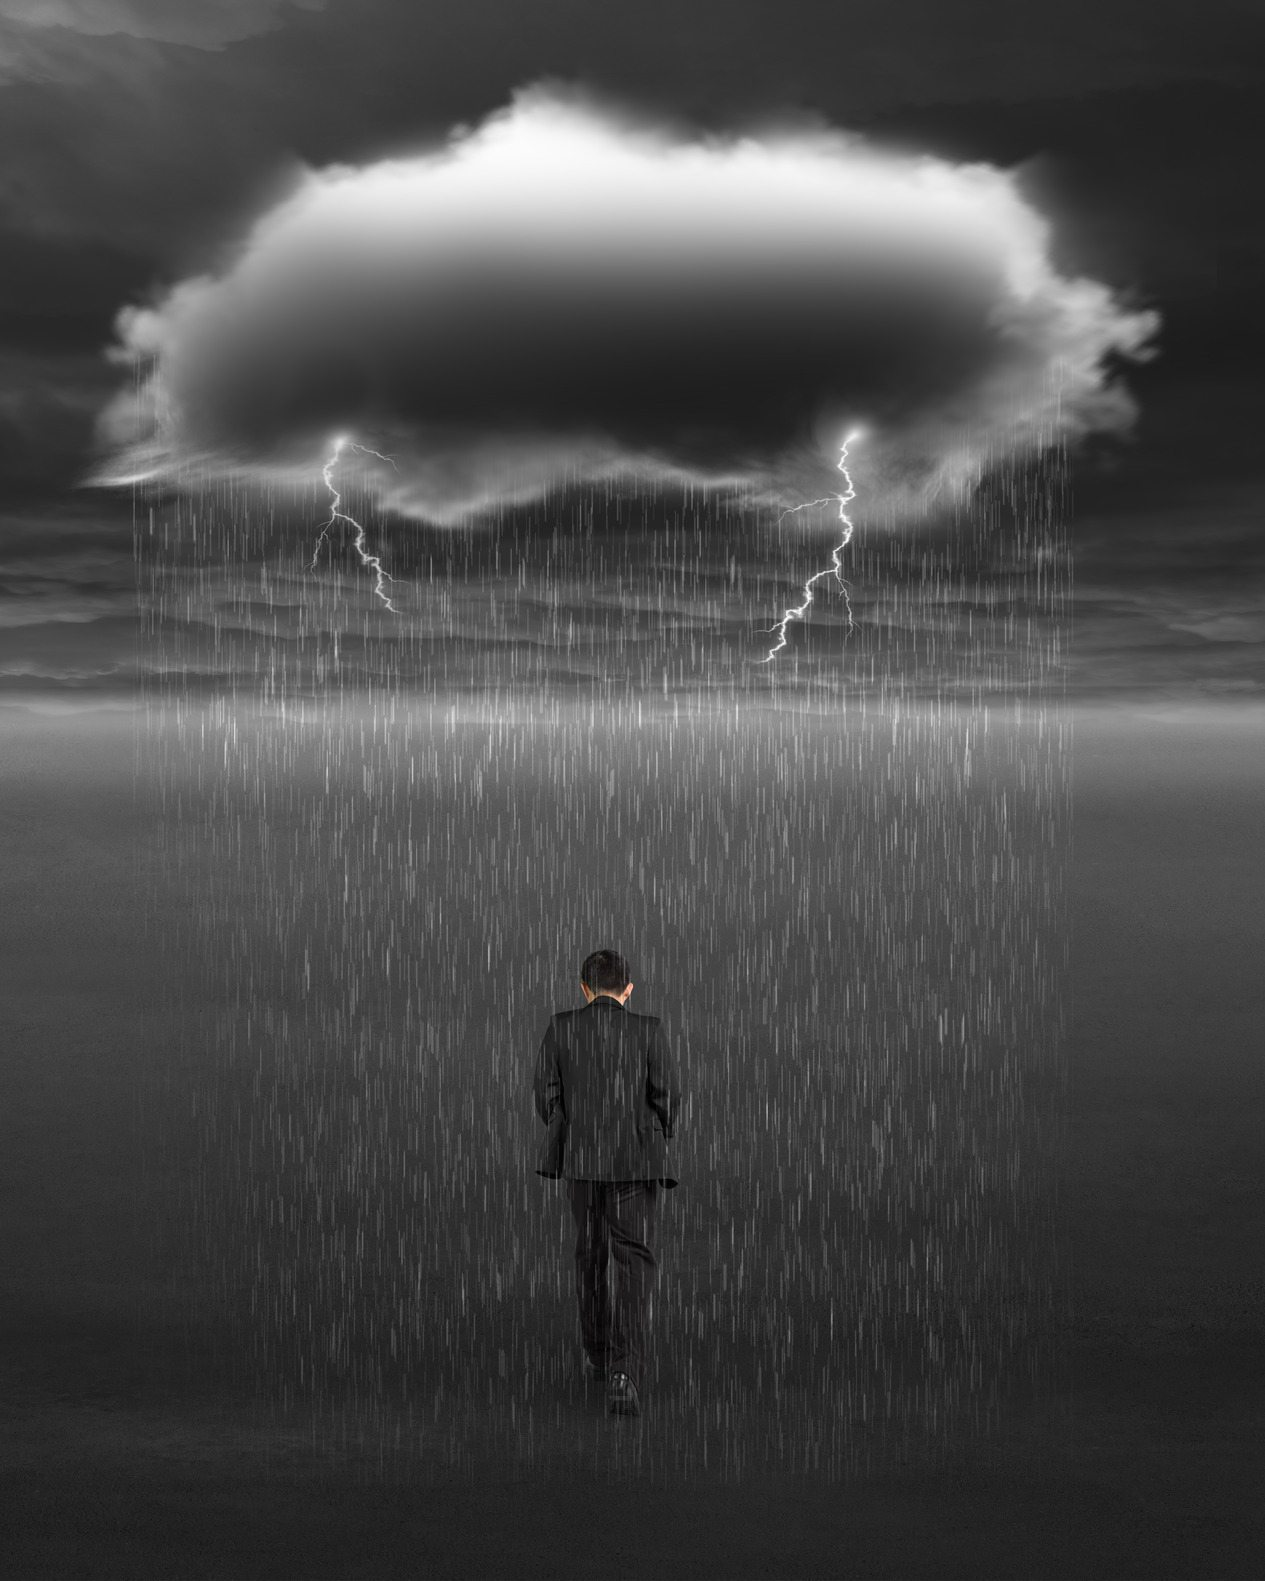 Depressed businessman walking with dark cloud of rain and lightning